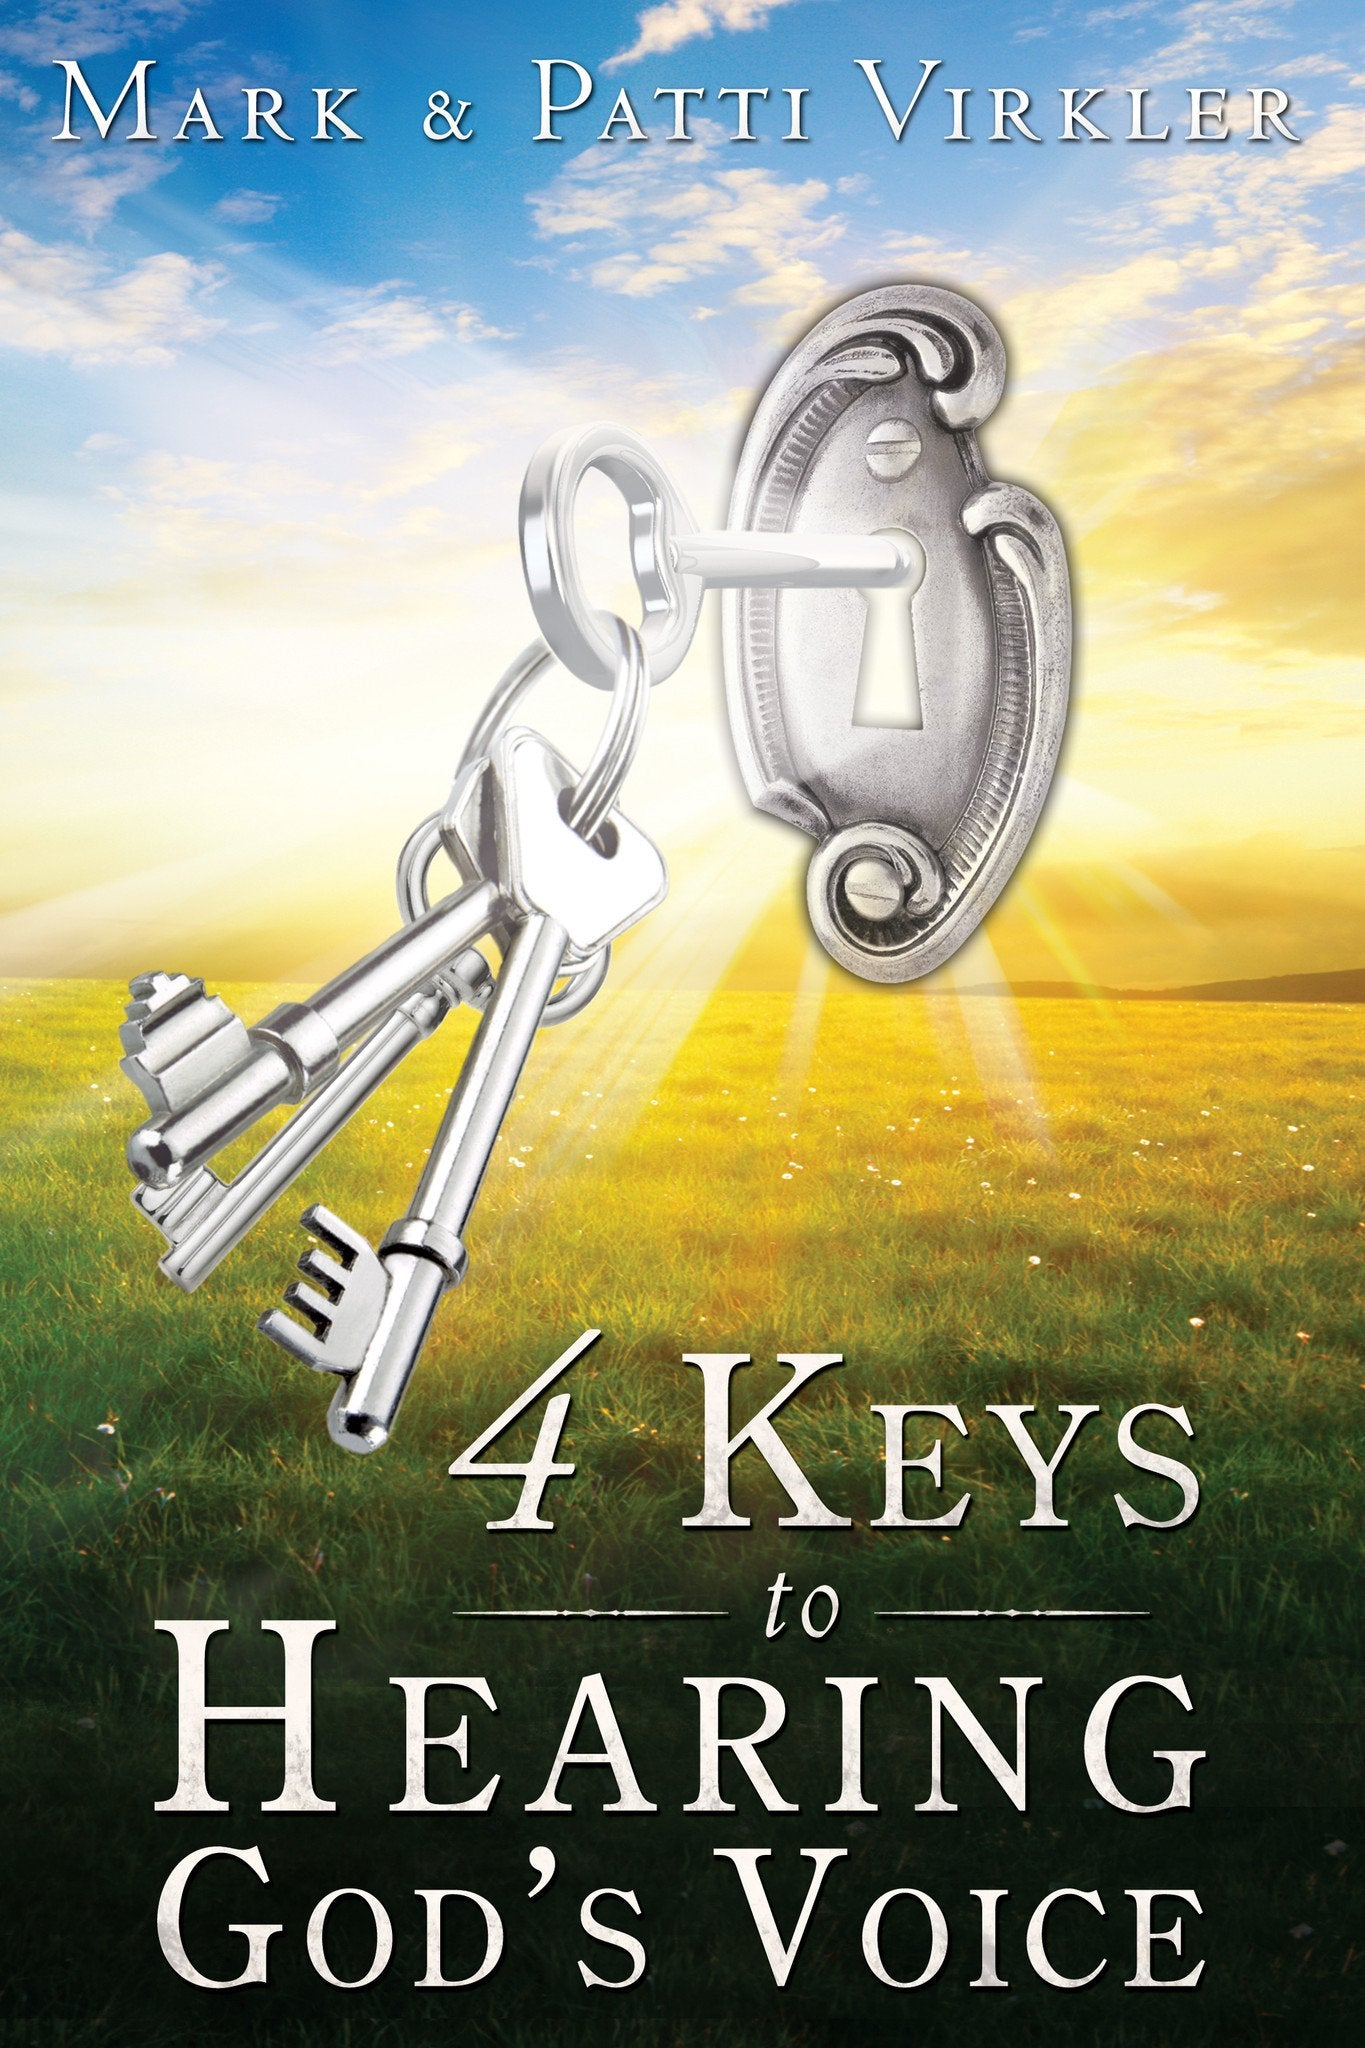 4 Keys to Hearing God's Voice